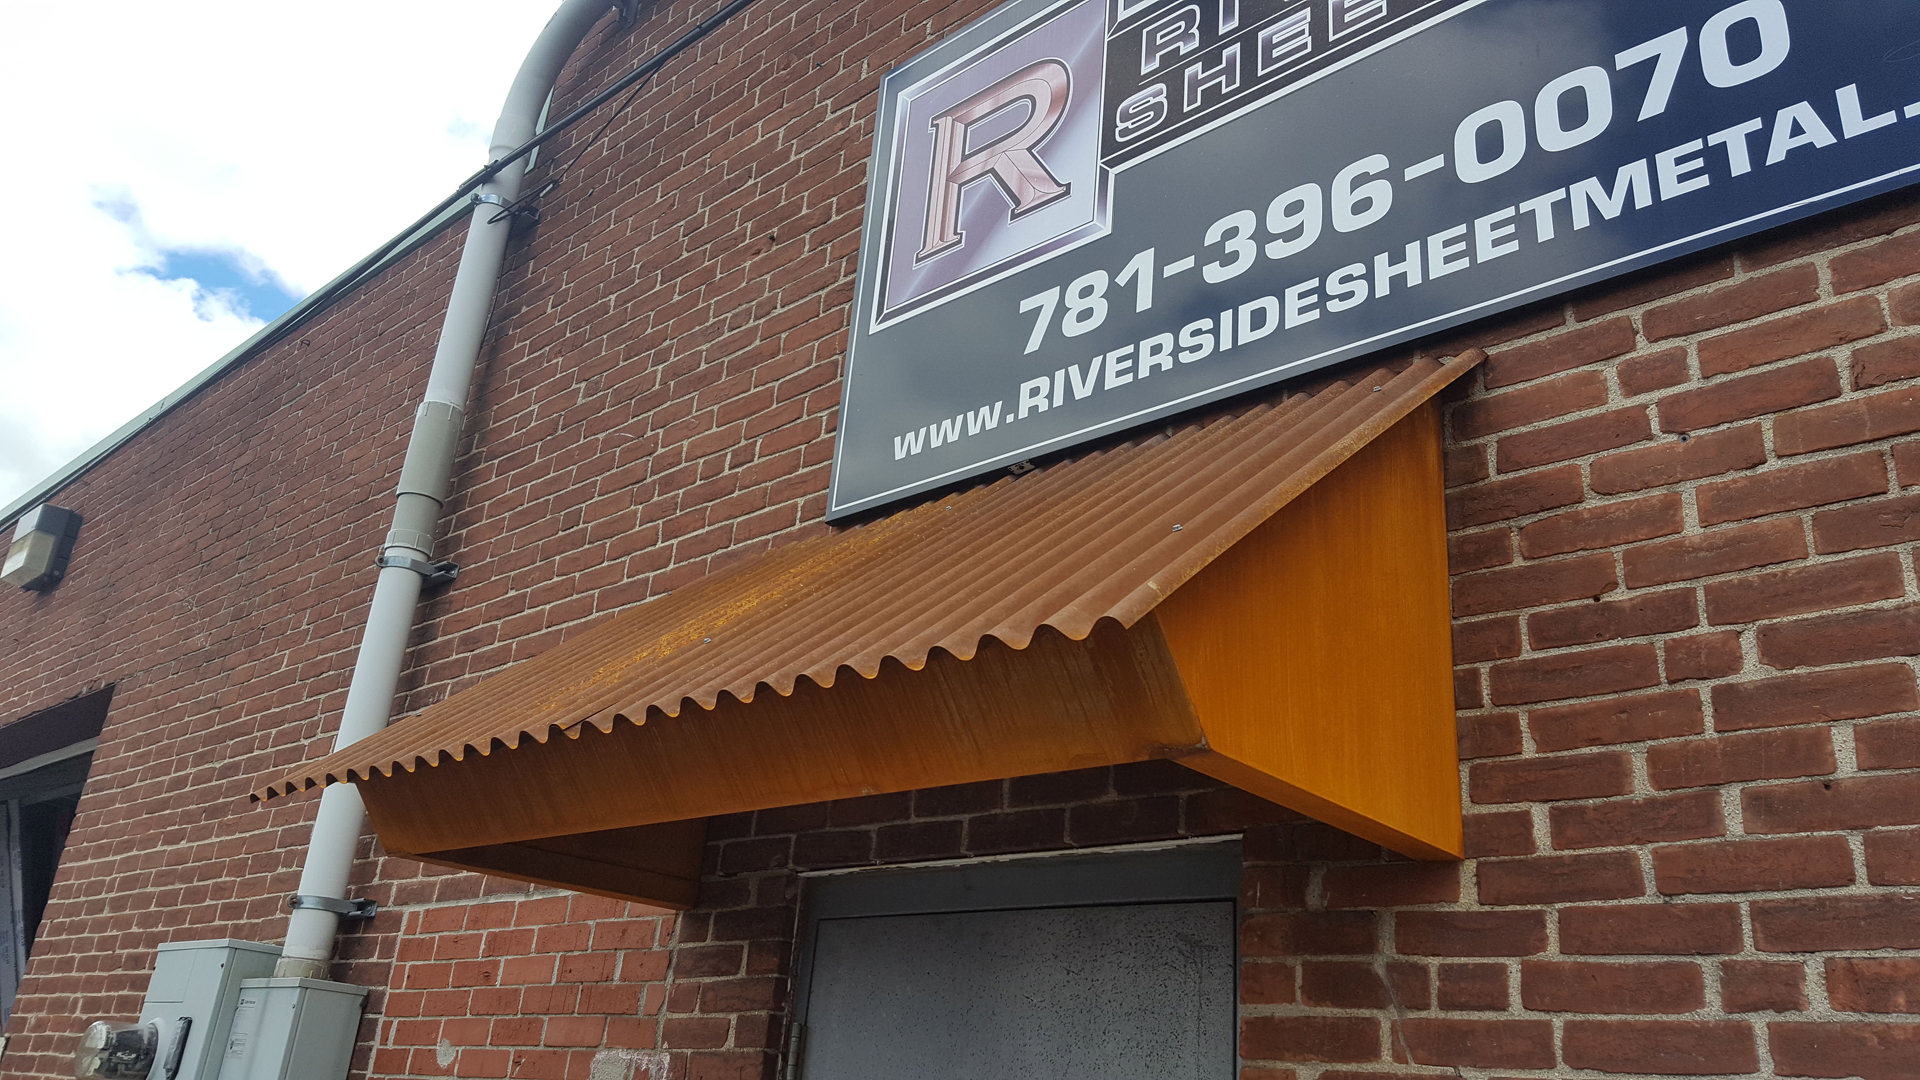 Corrugated Corten Rusted Roof Panel Installation